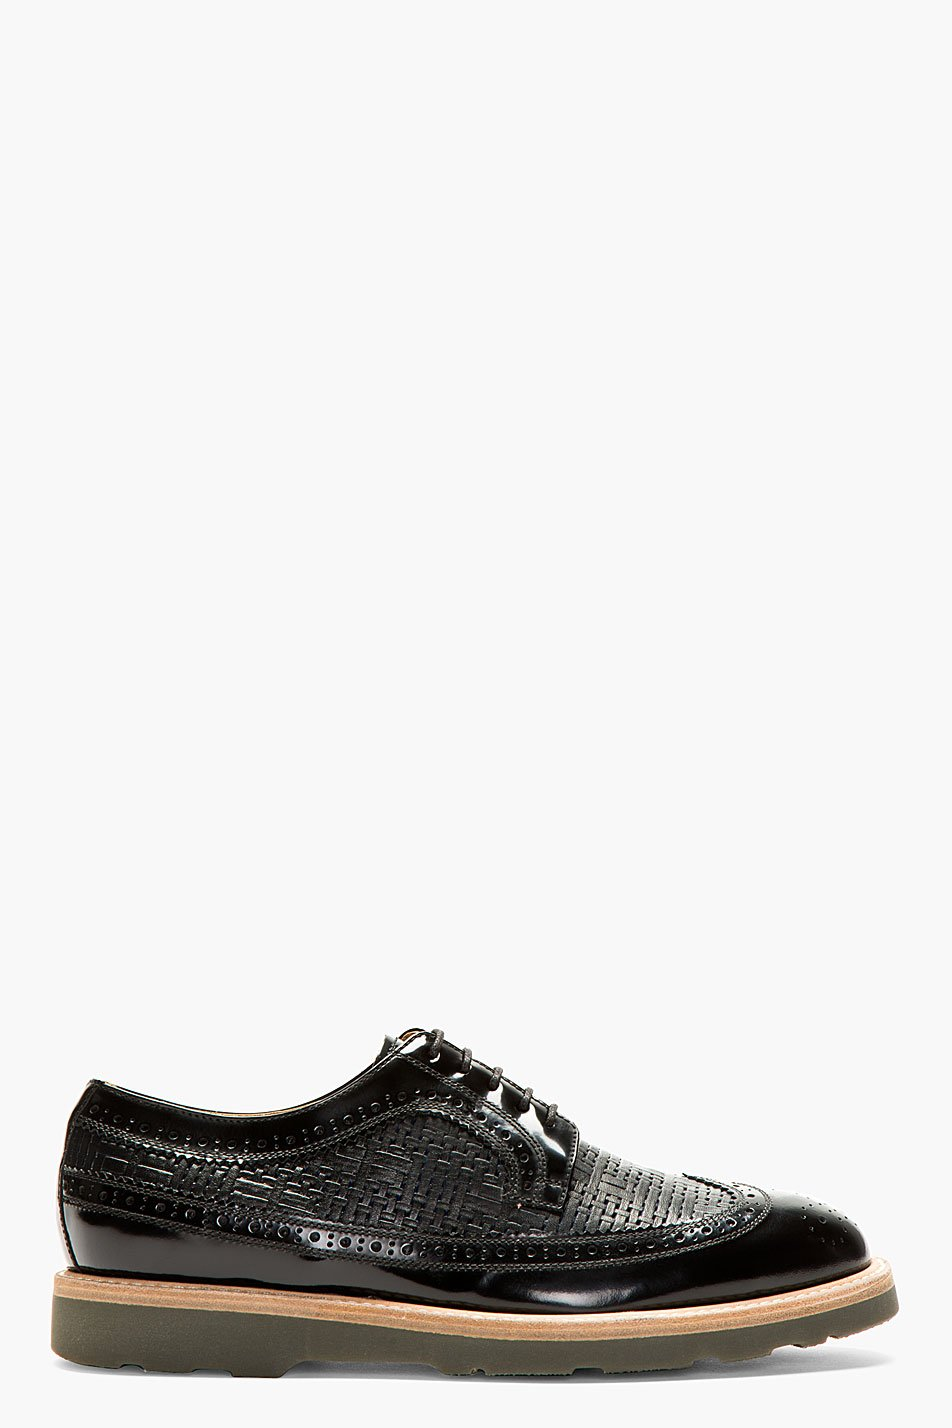 Paul smith black leather longwing brogues